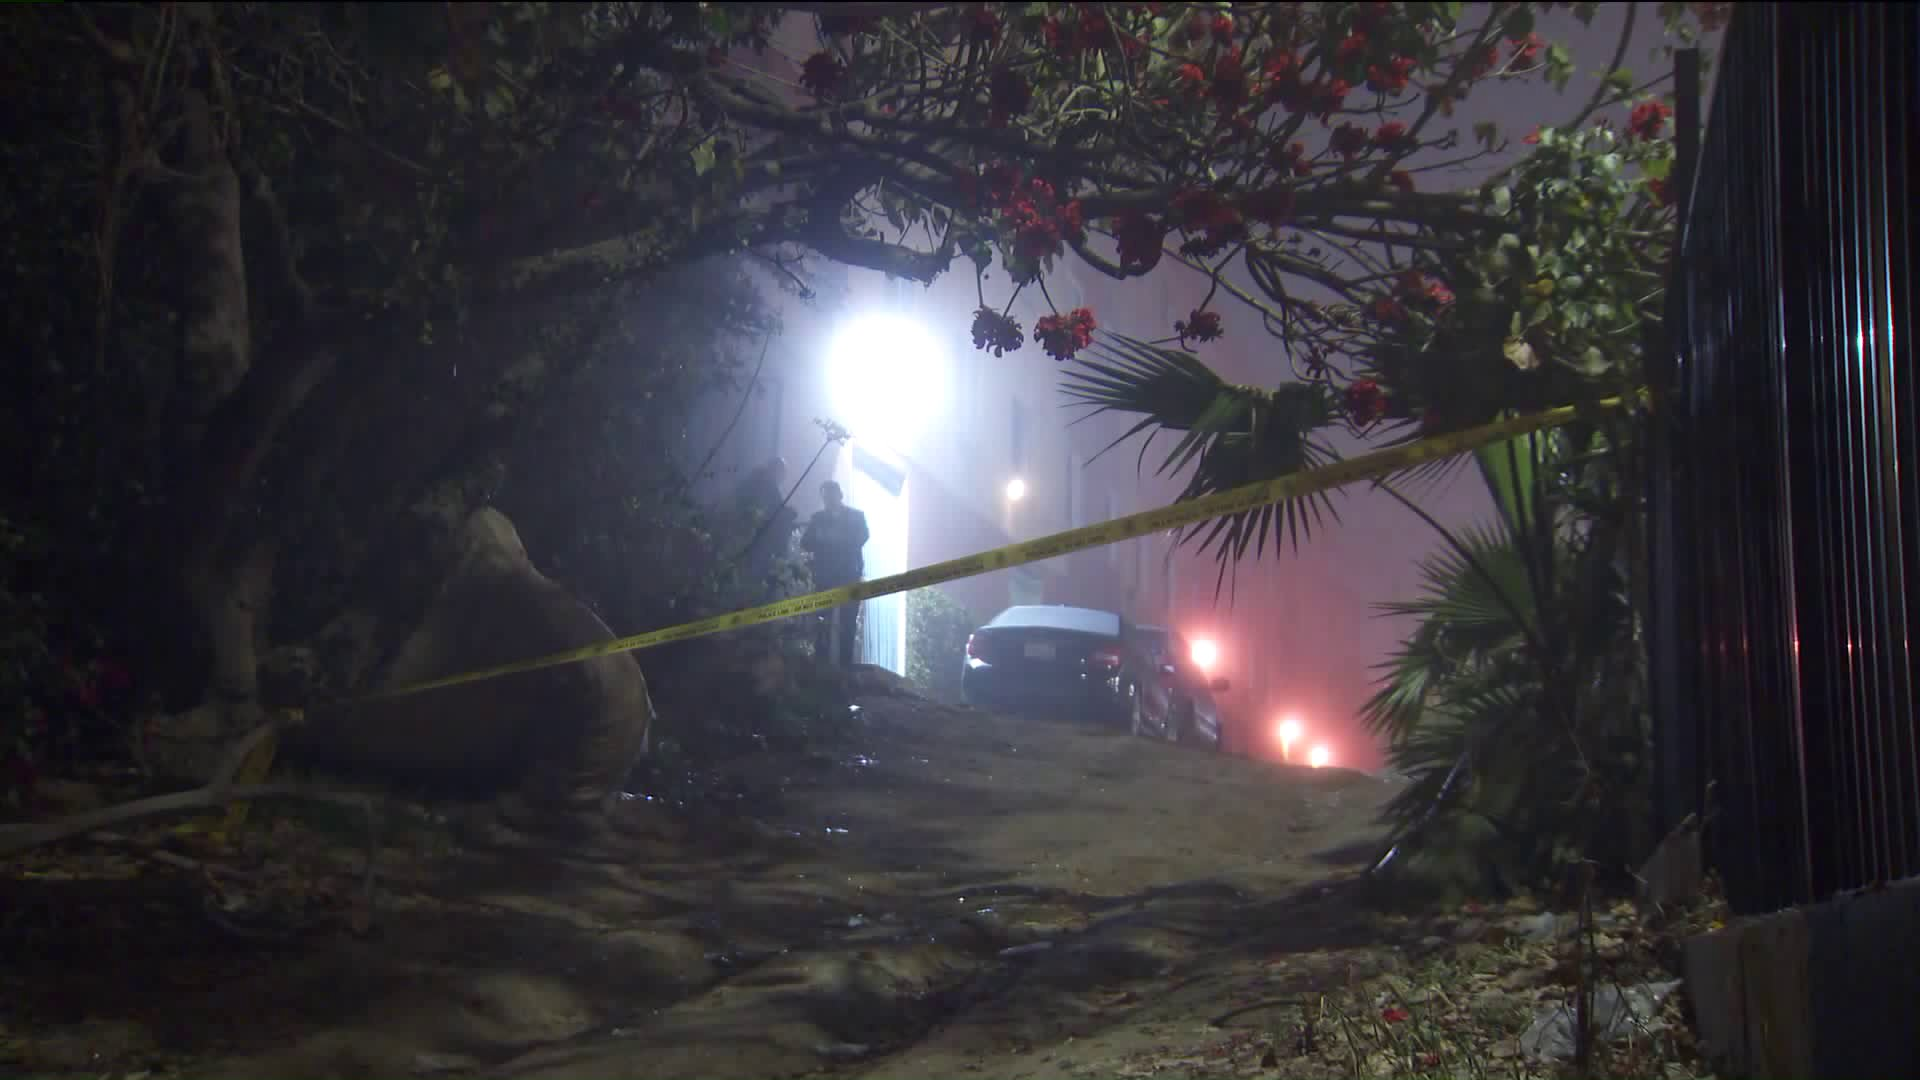 Police respond to the scene of a fatal shooting in the Harbor Gateway neighborhood of Los Angeles on March 6, 2020. (KTLA)